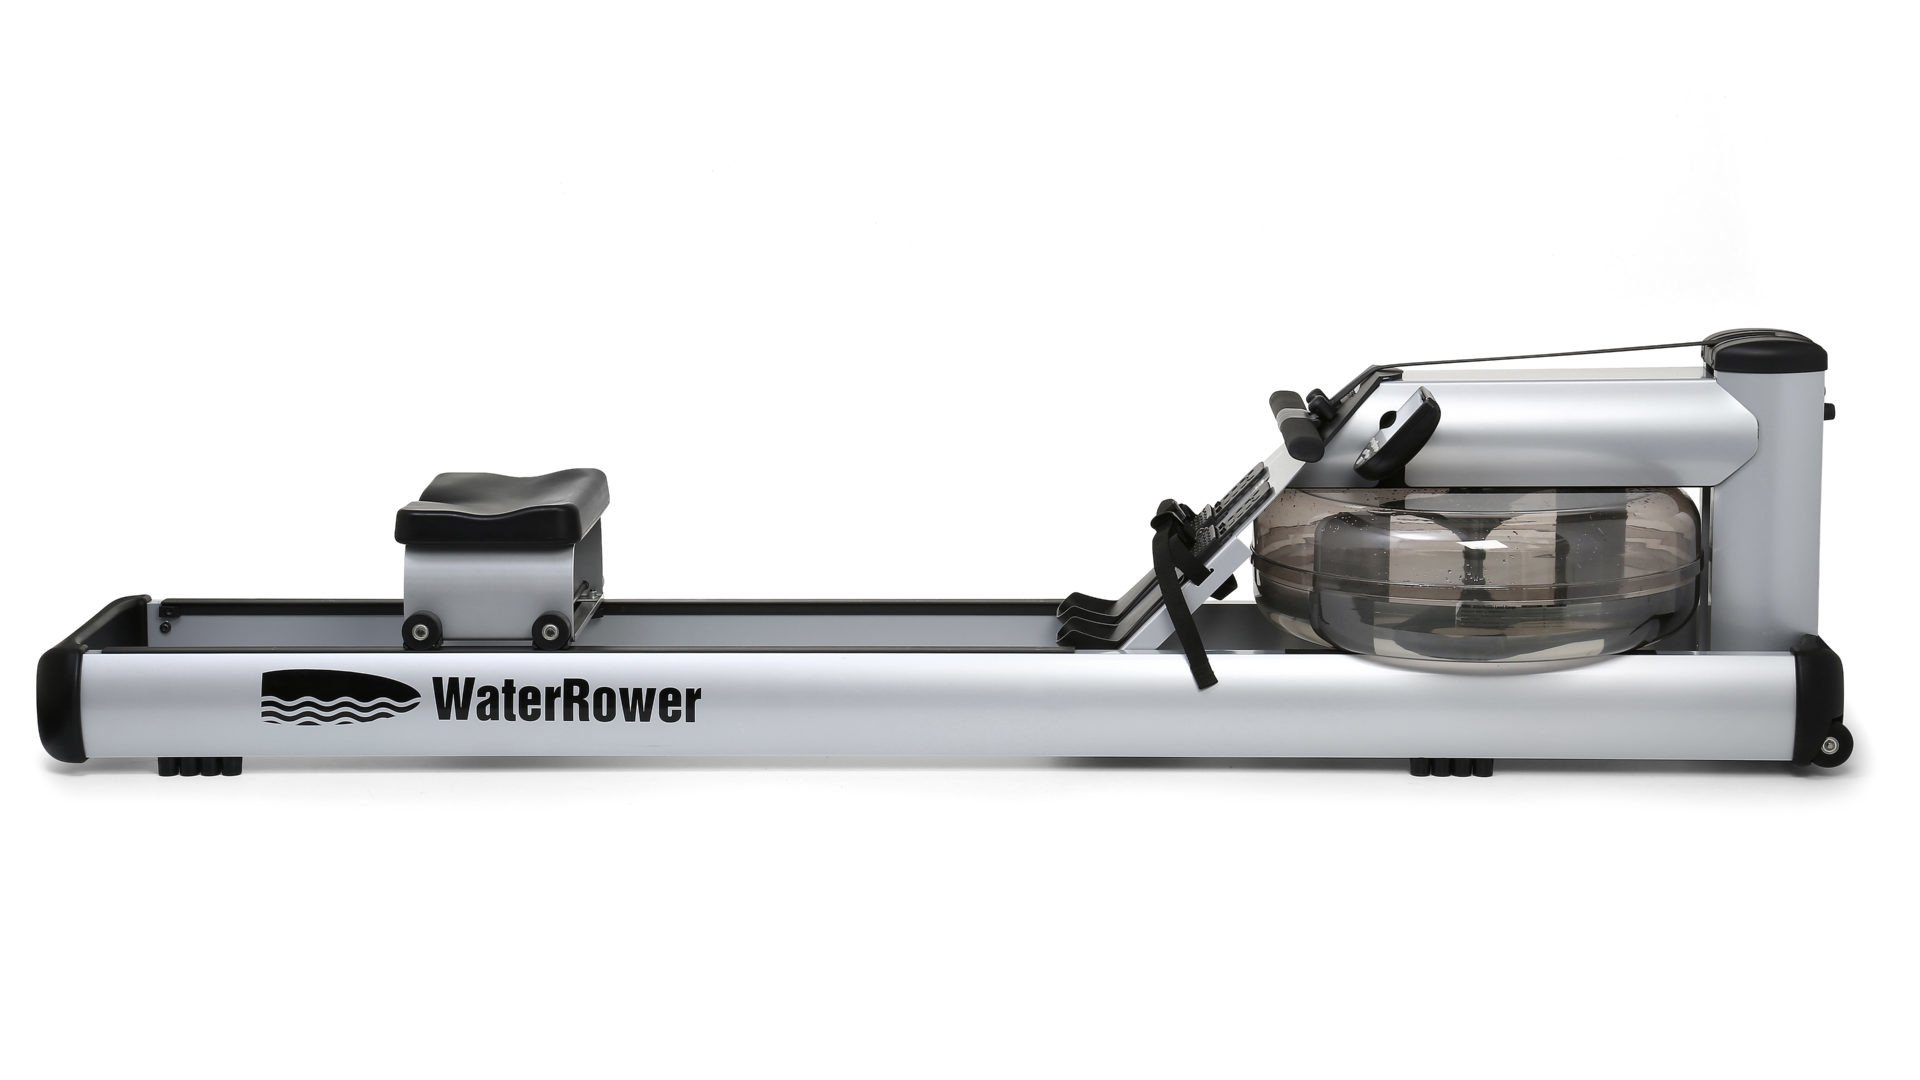 Wioślarz M1 LoRise - WaterRower